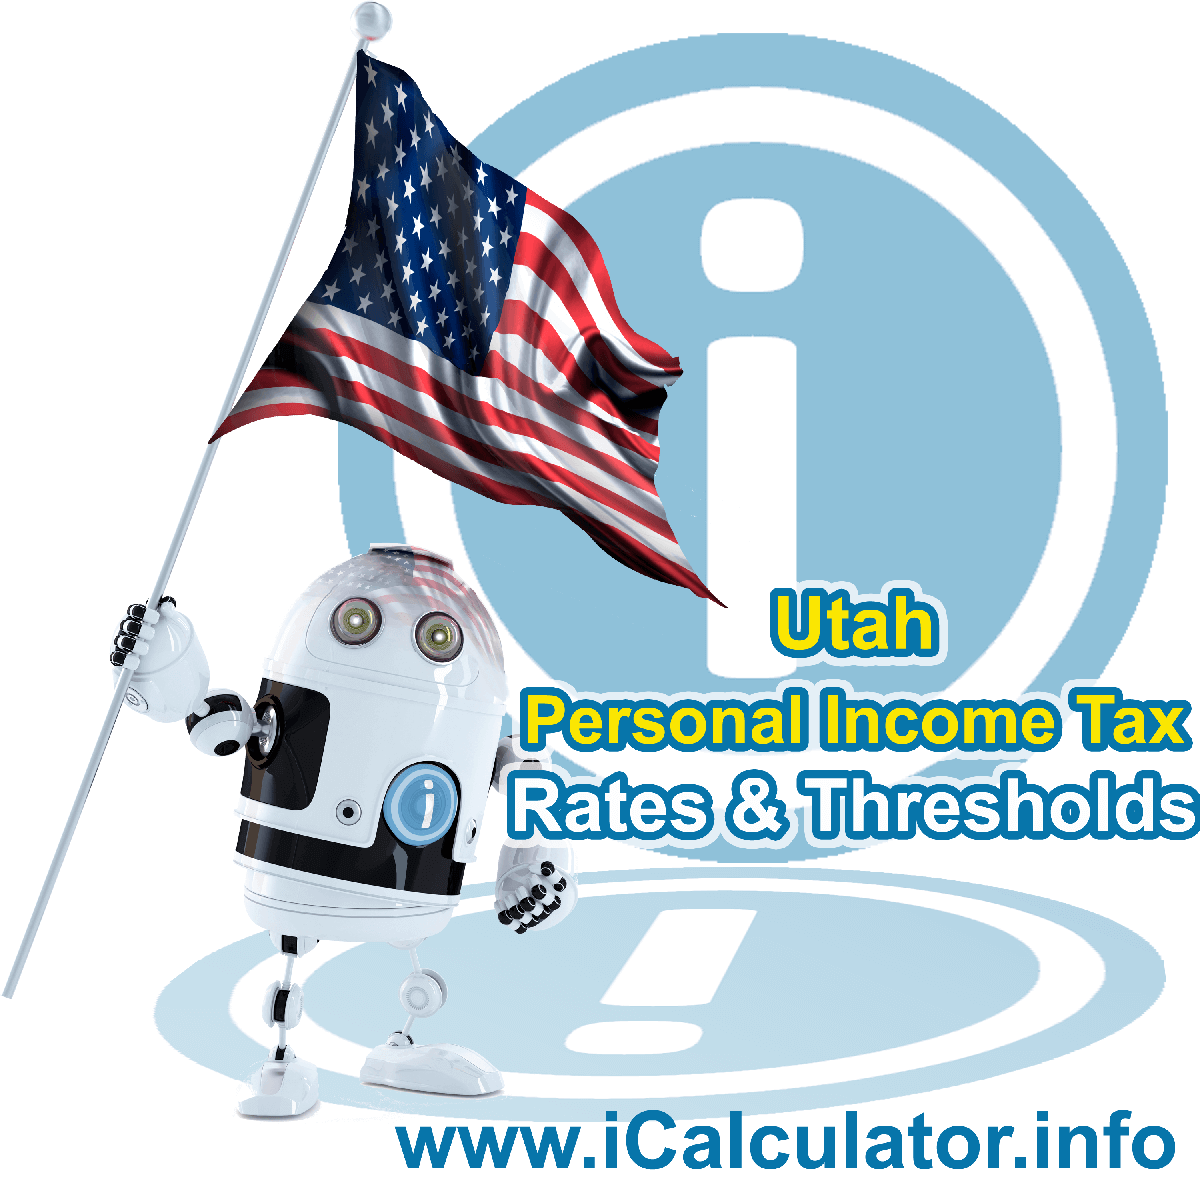 Utah State Tax Tables 2013. This image displays details of the Utah State Tax Tables for the 2013 tax return year which is provided in support of the 2013 US Tax Calculator